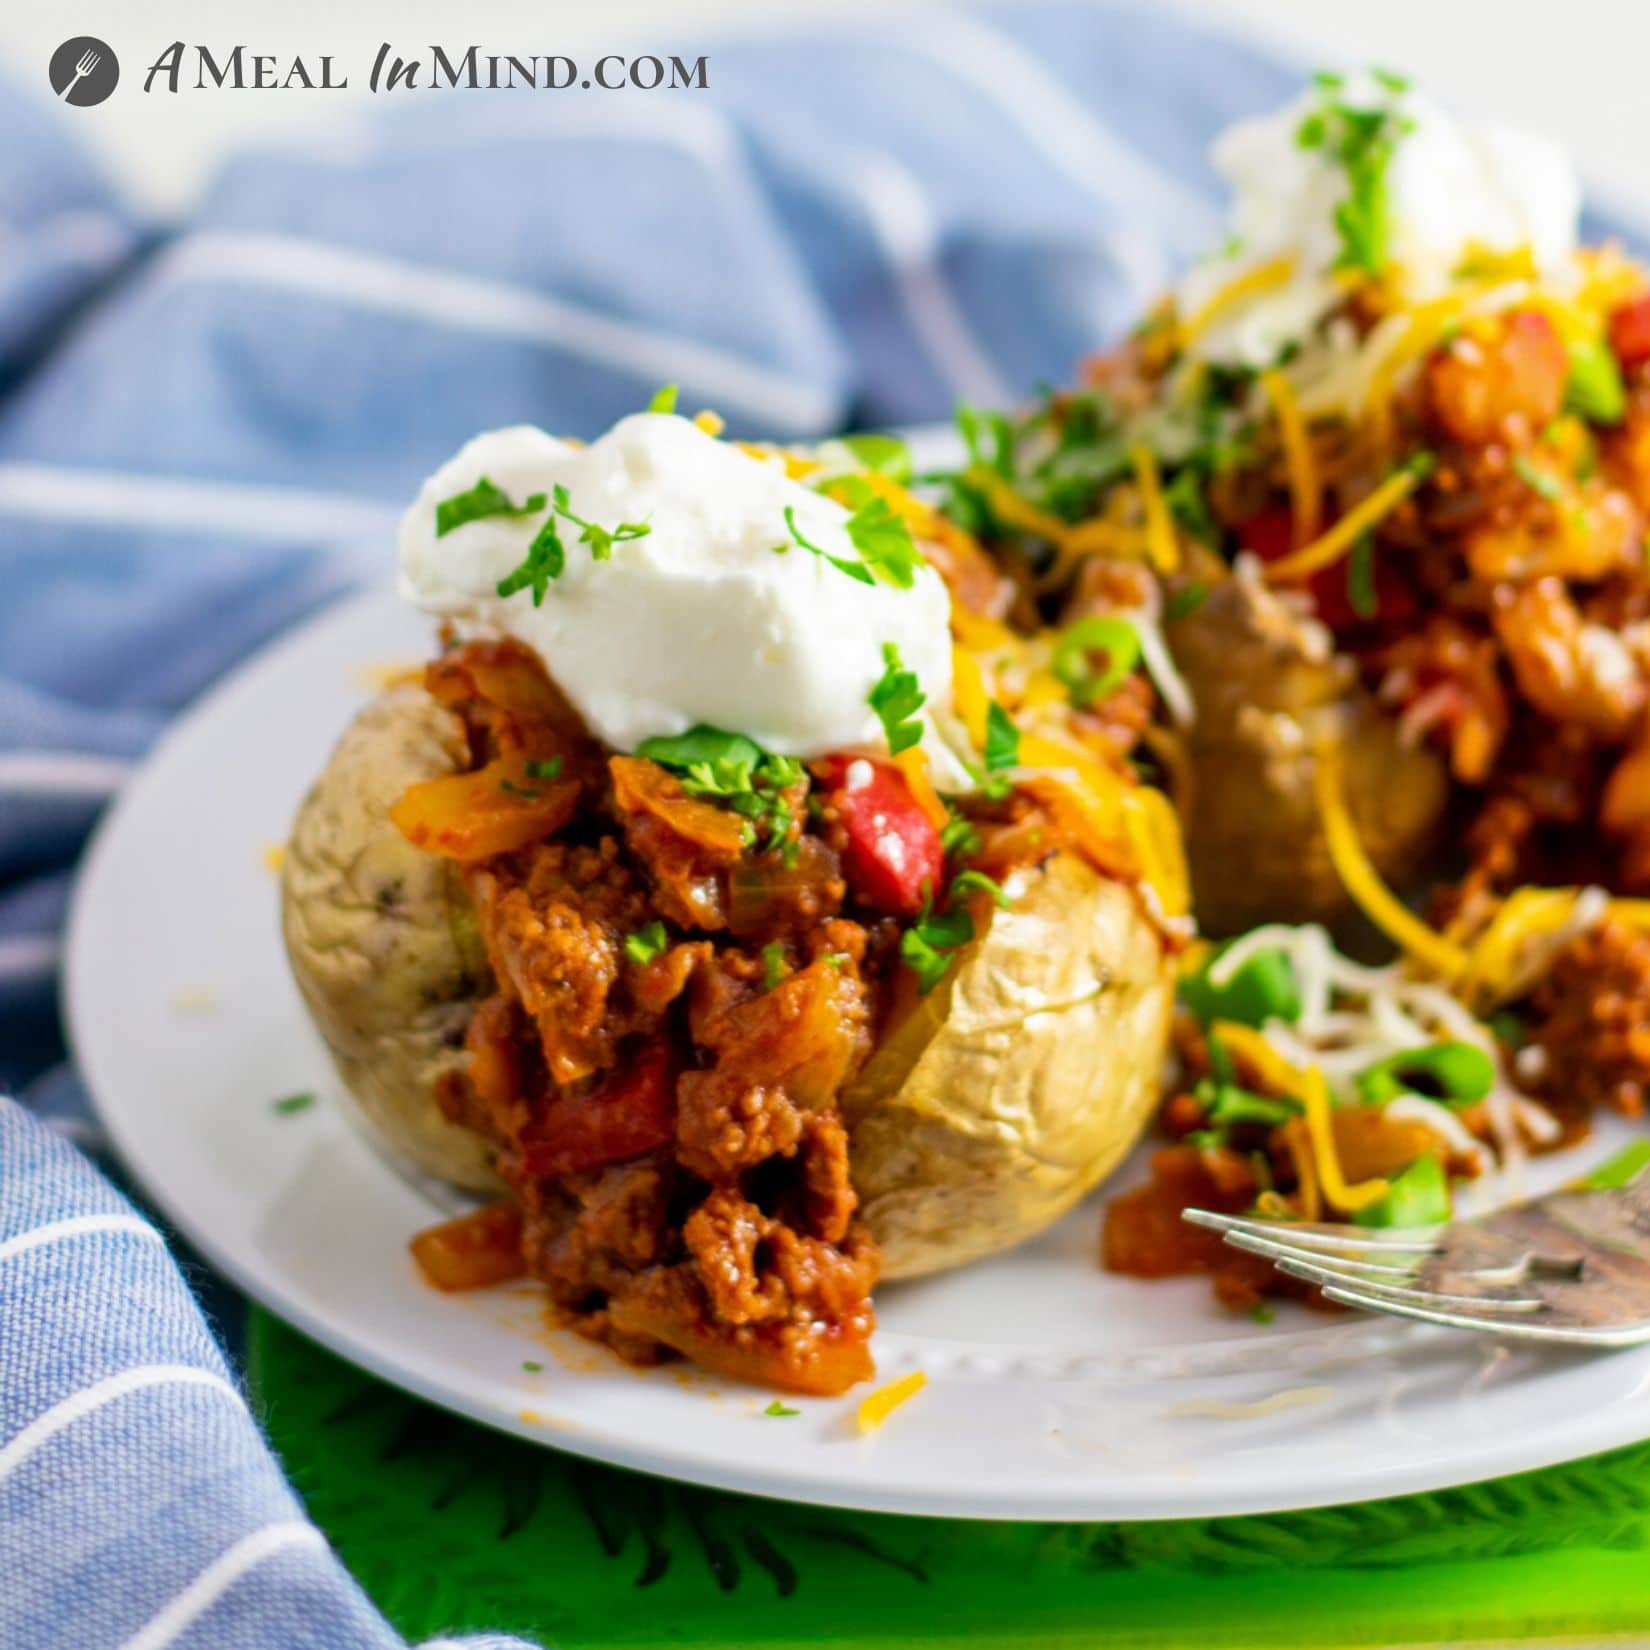 Sloppy Joe Stuffed Potatoes side view on white plate with garnishes